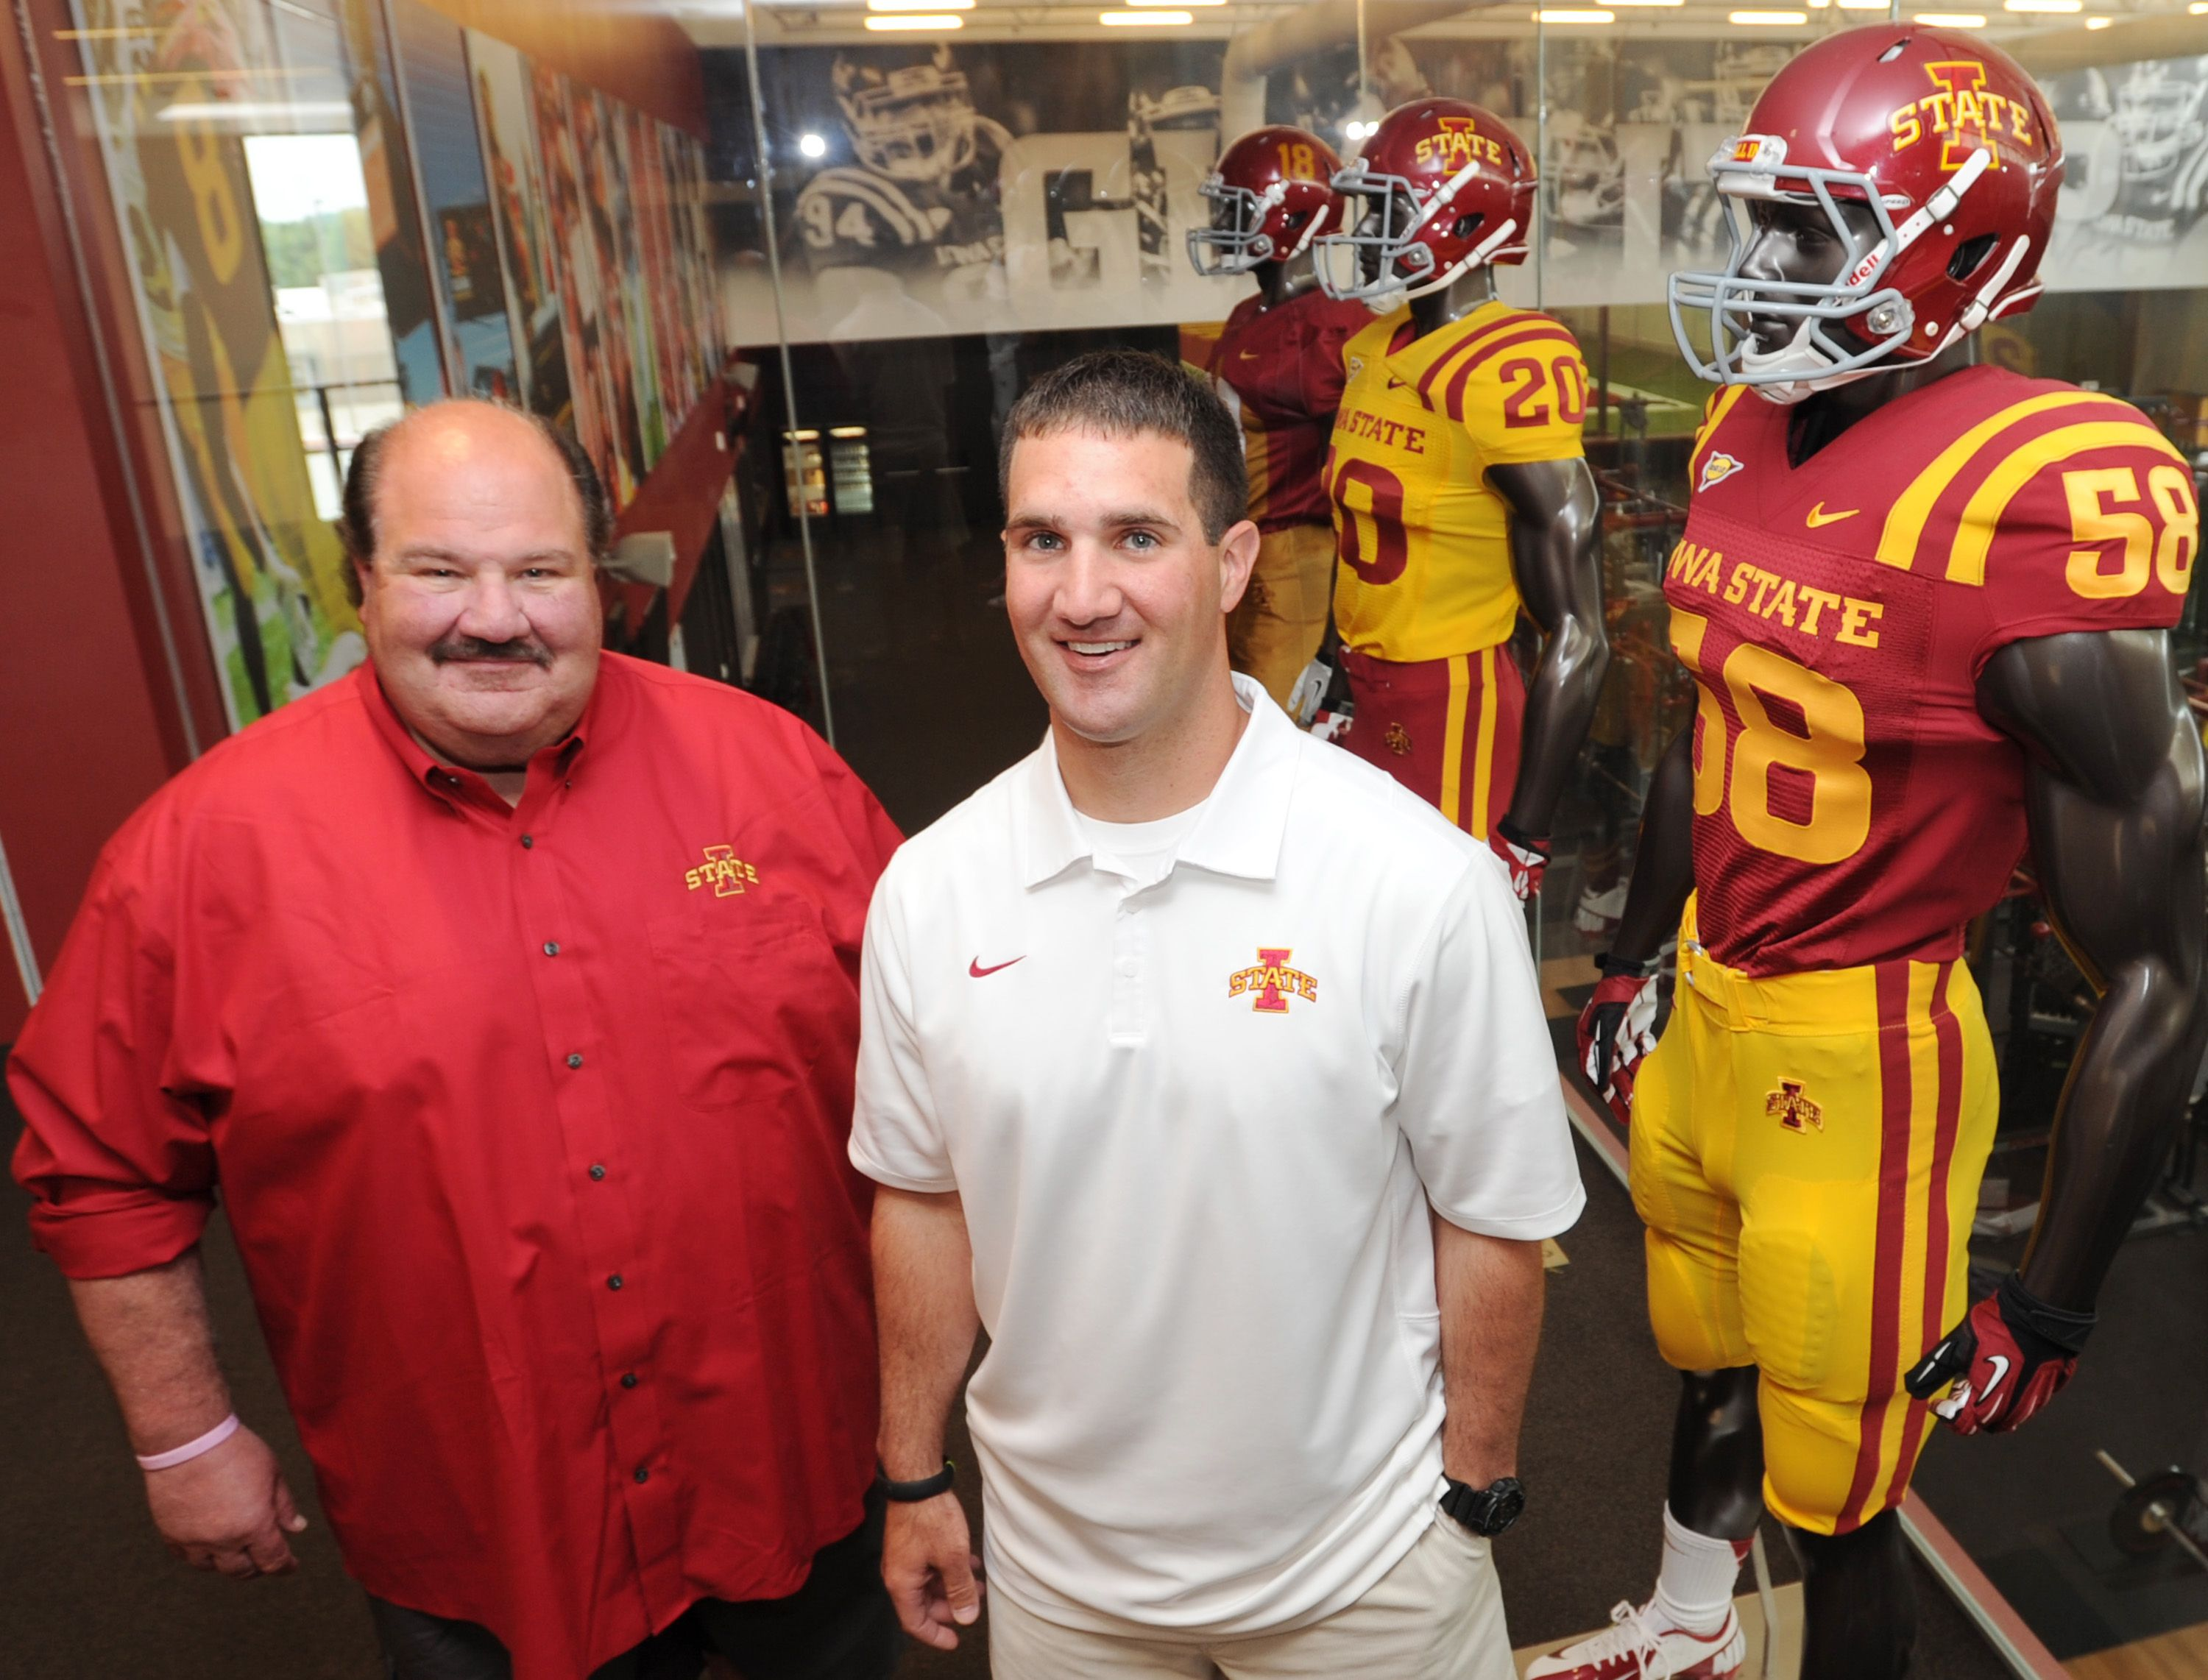 Iowa State S Offensive Coordinator Mark Mangino Left And His Son